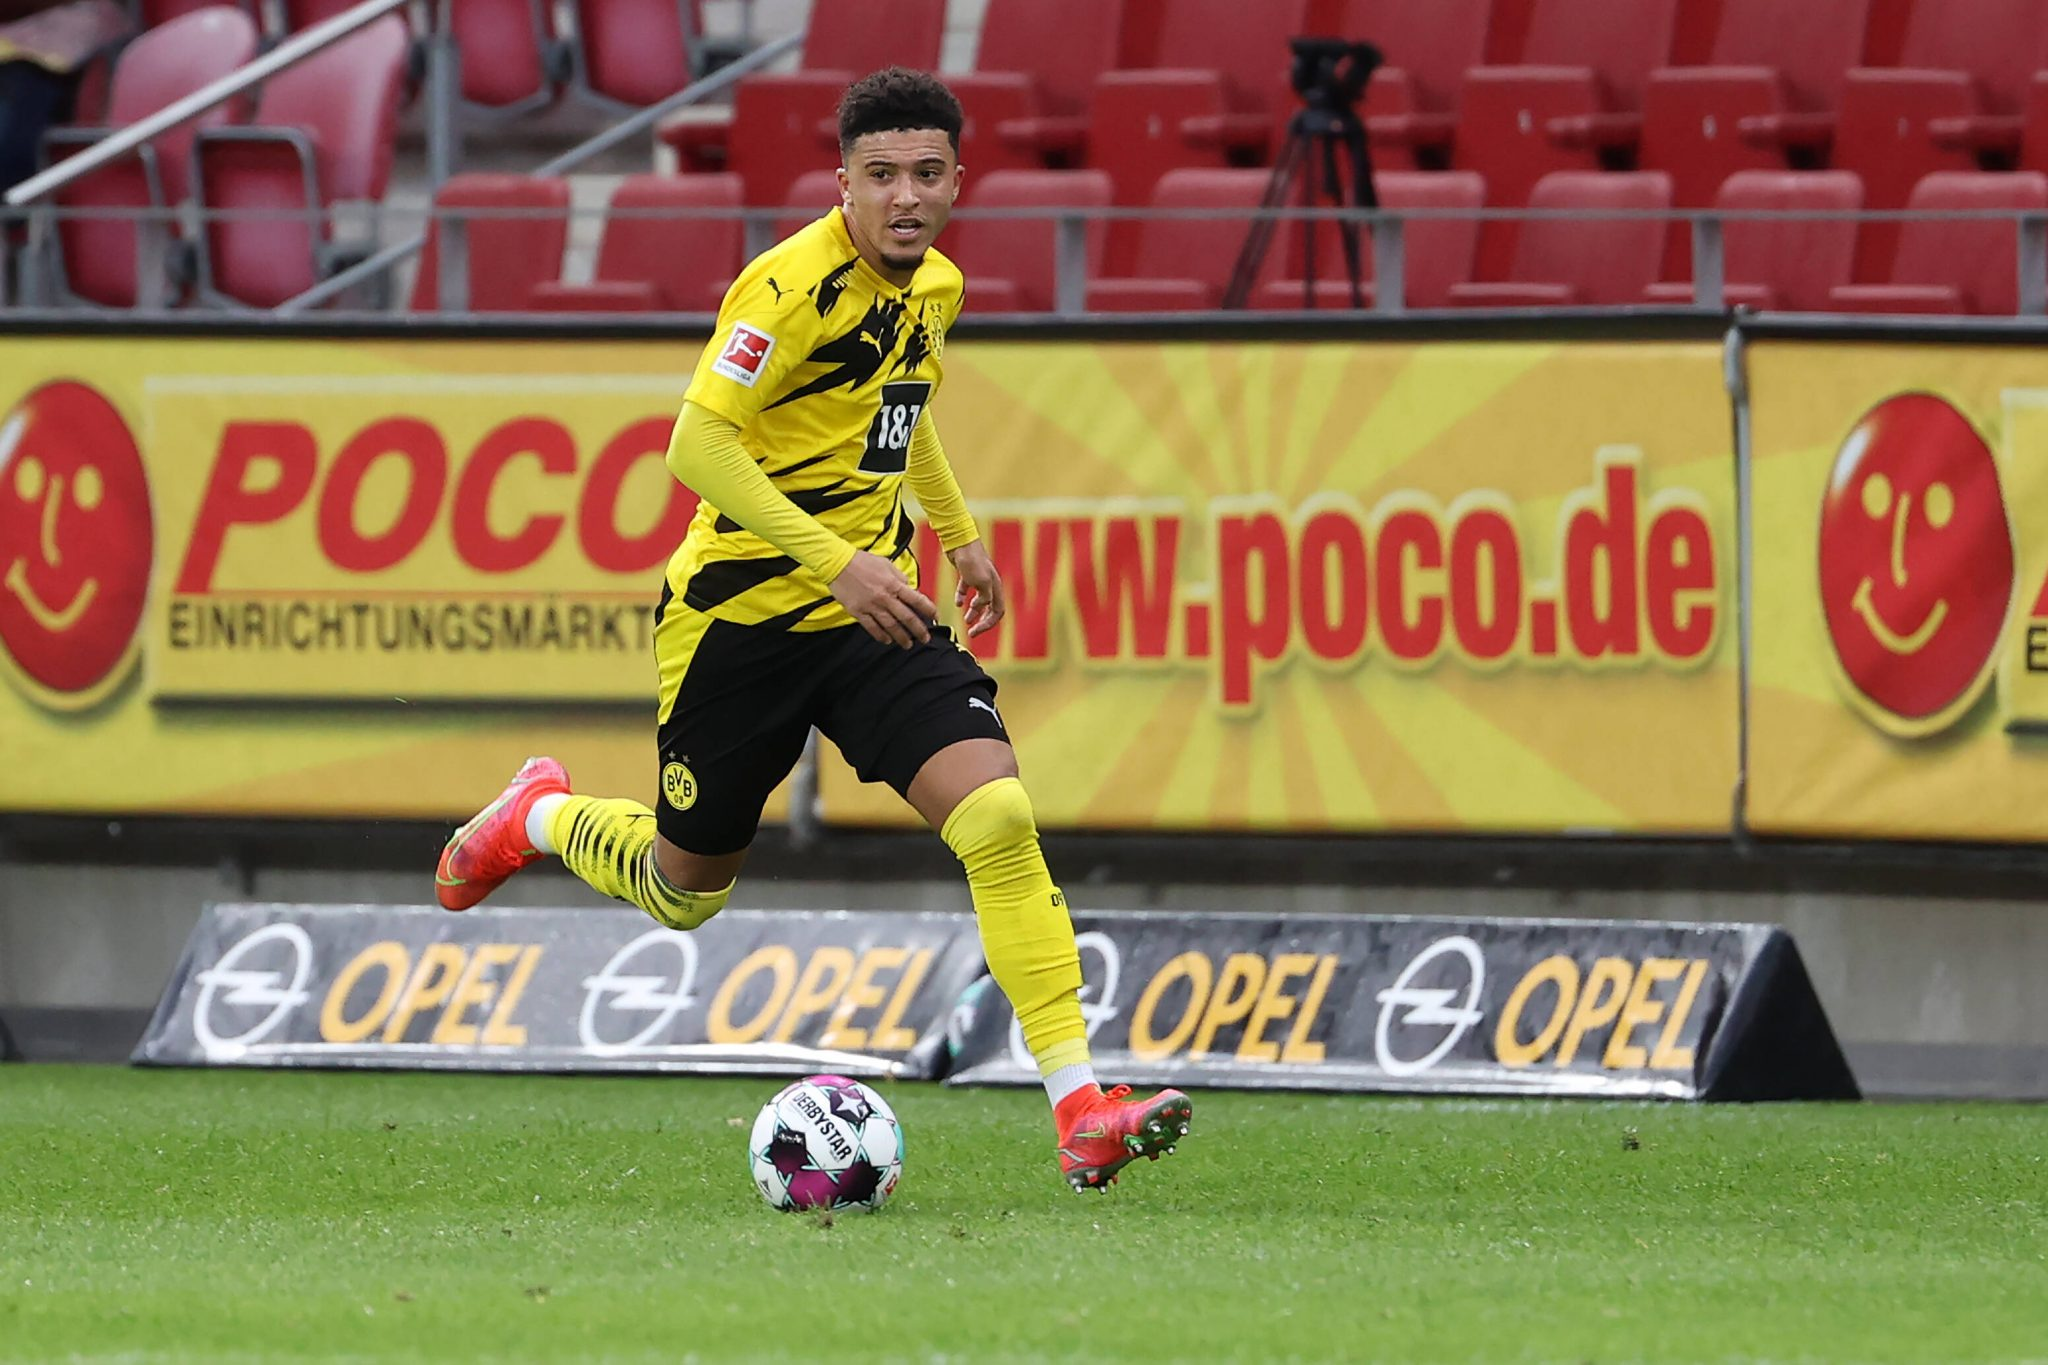 Manchester United are preparing a massive £85 million opening offer for Jadon Sancho.